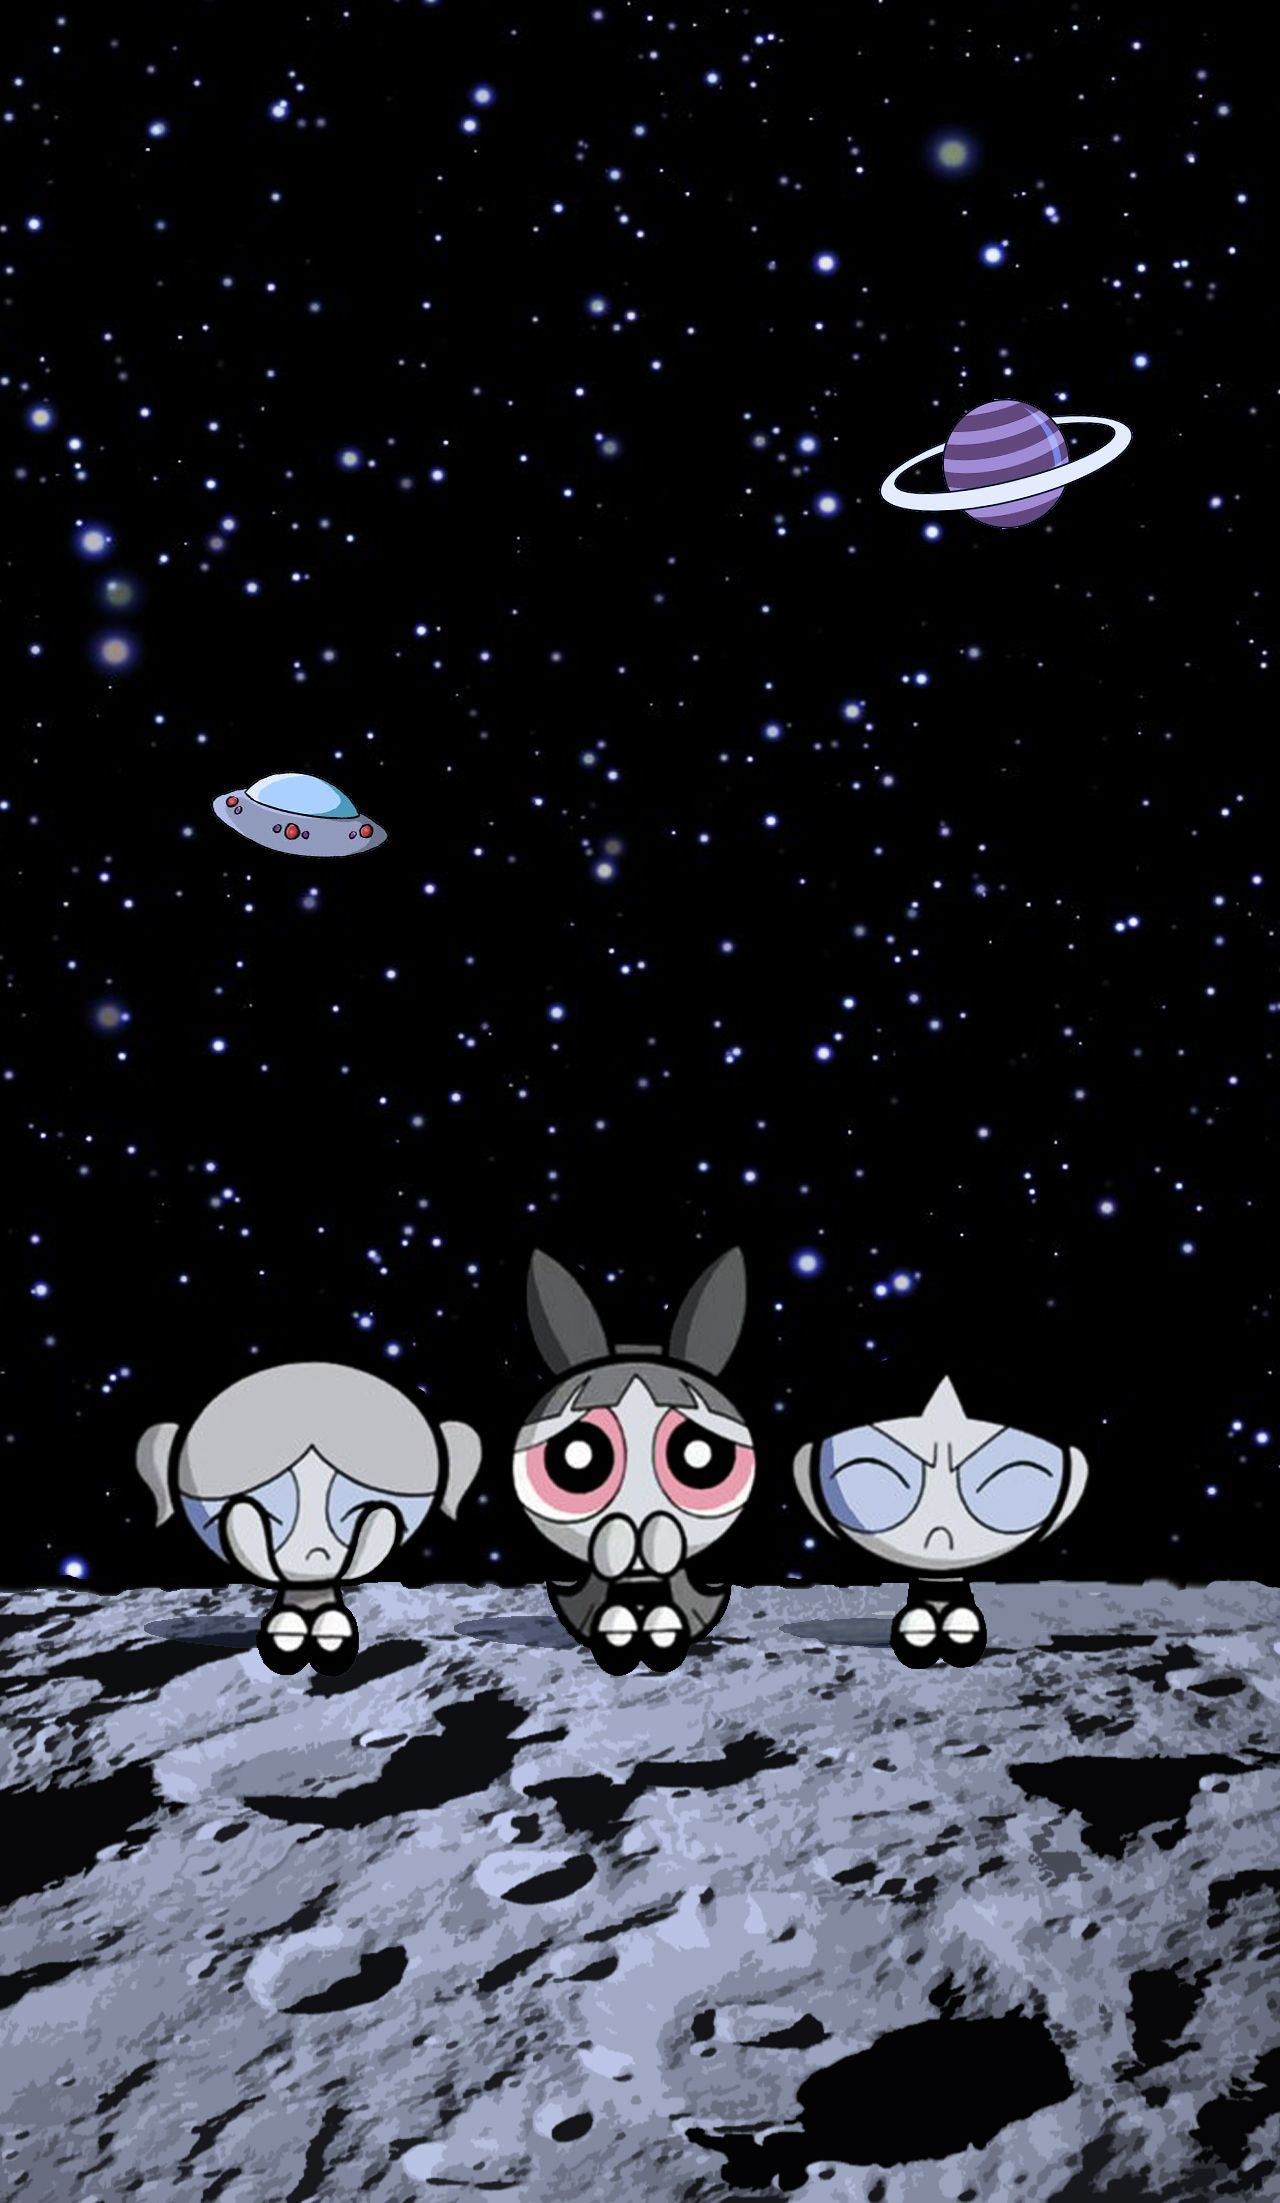 Cartoon Outer Space Astronomical Object Illustration Fiction Space In 2020 Powerpuff Girls Wallpaper Space Phone Wallpaper Cartoon Wallpaper